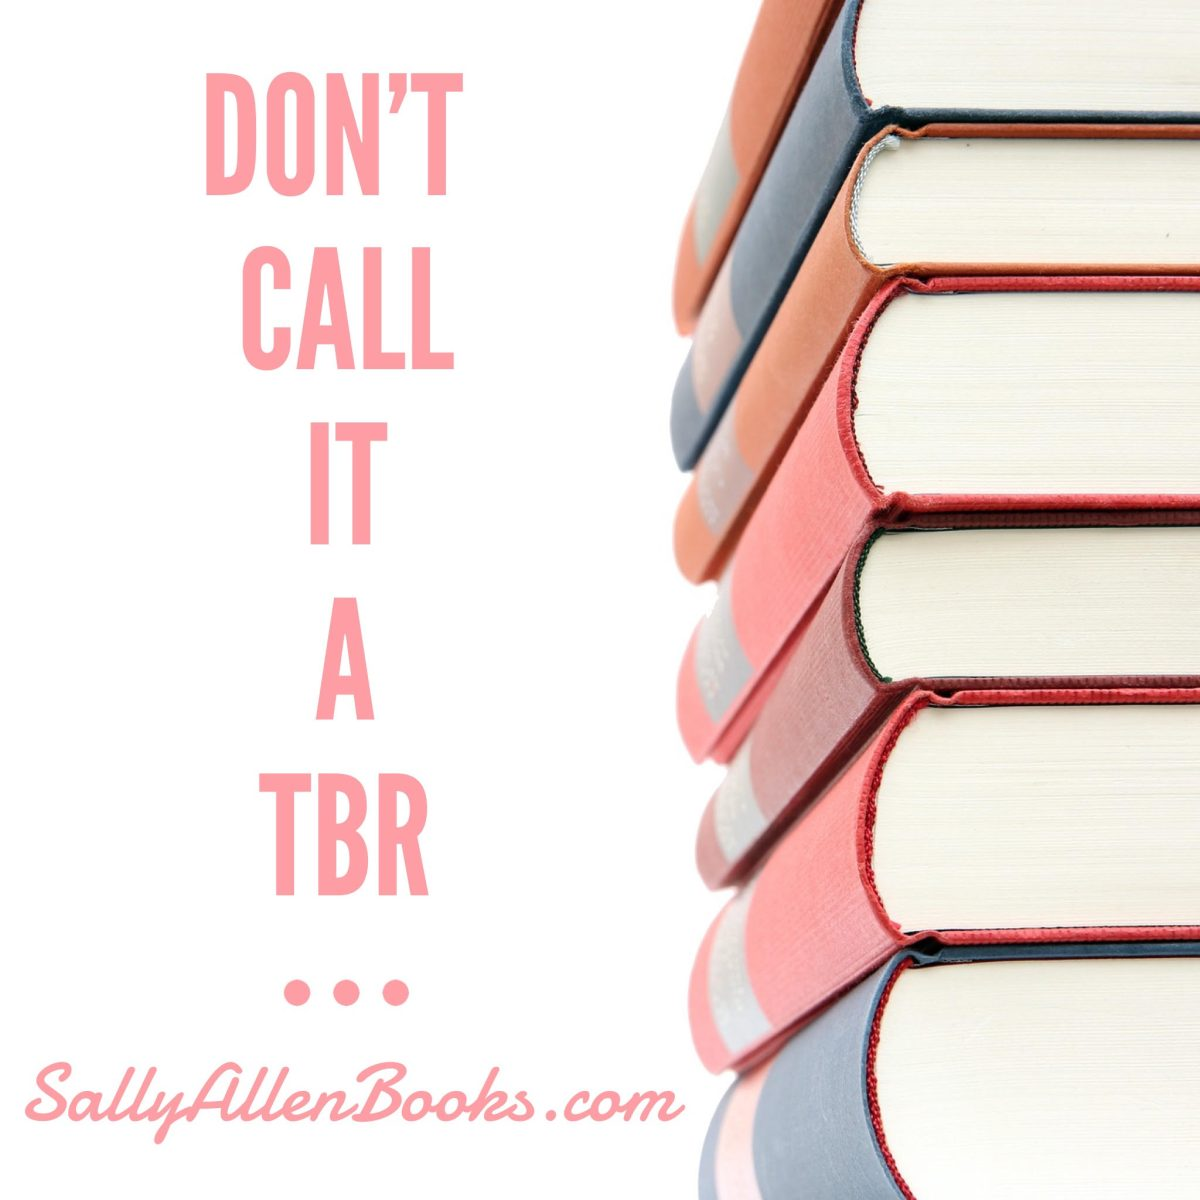 Don't call it a TBR